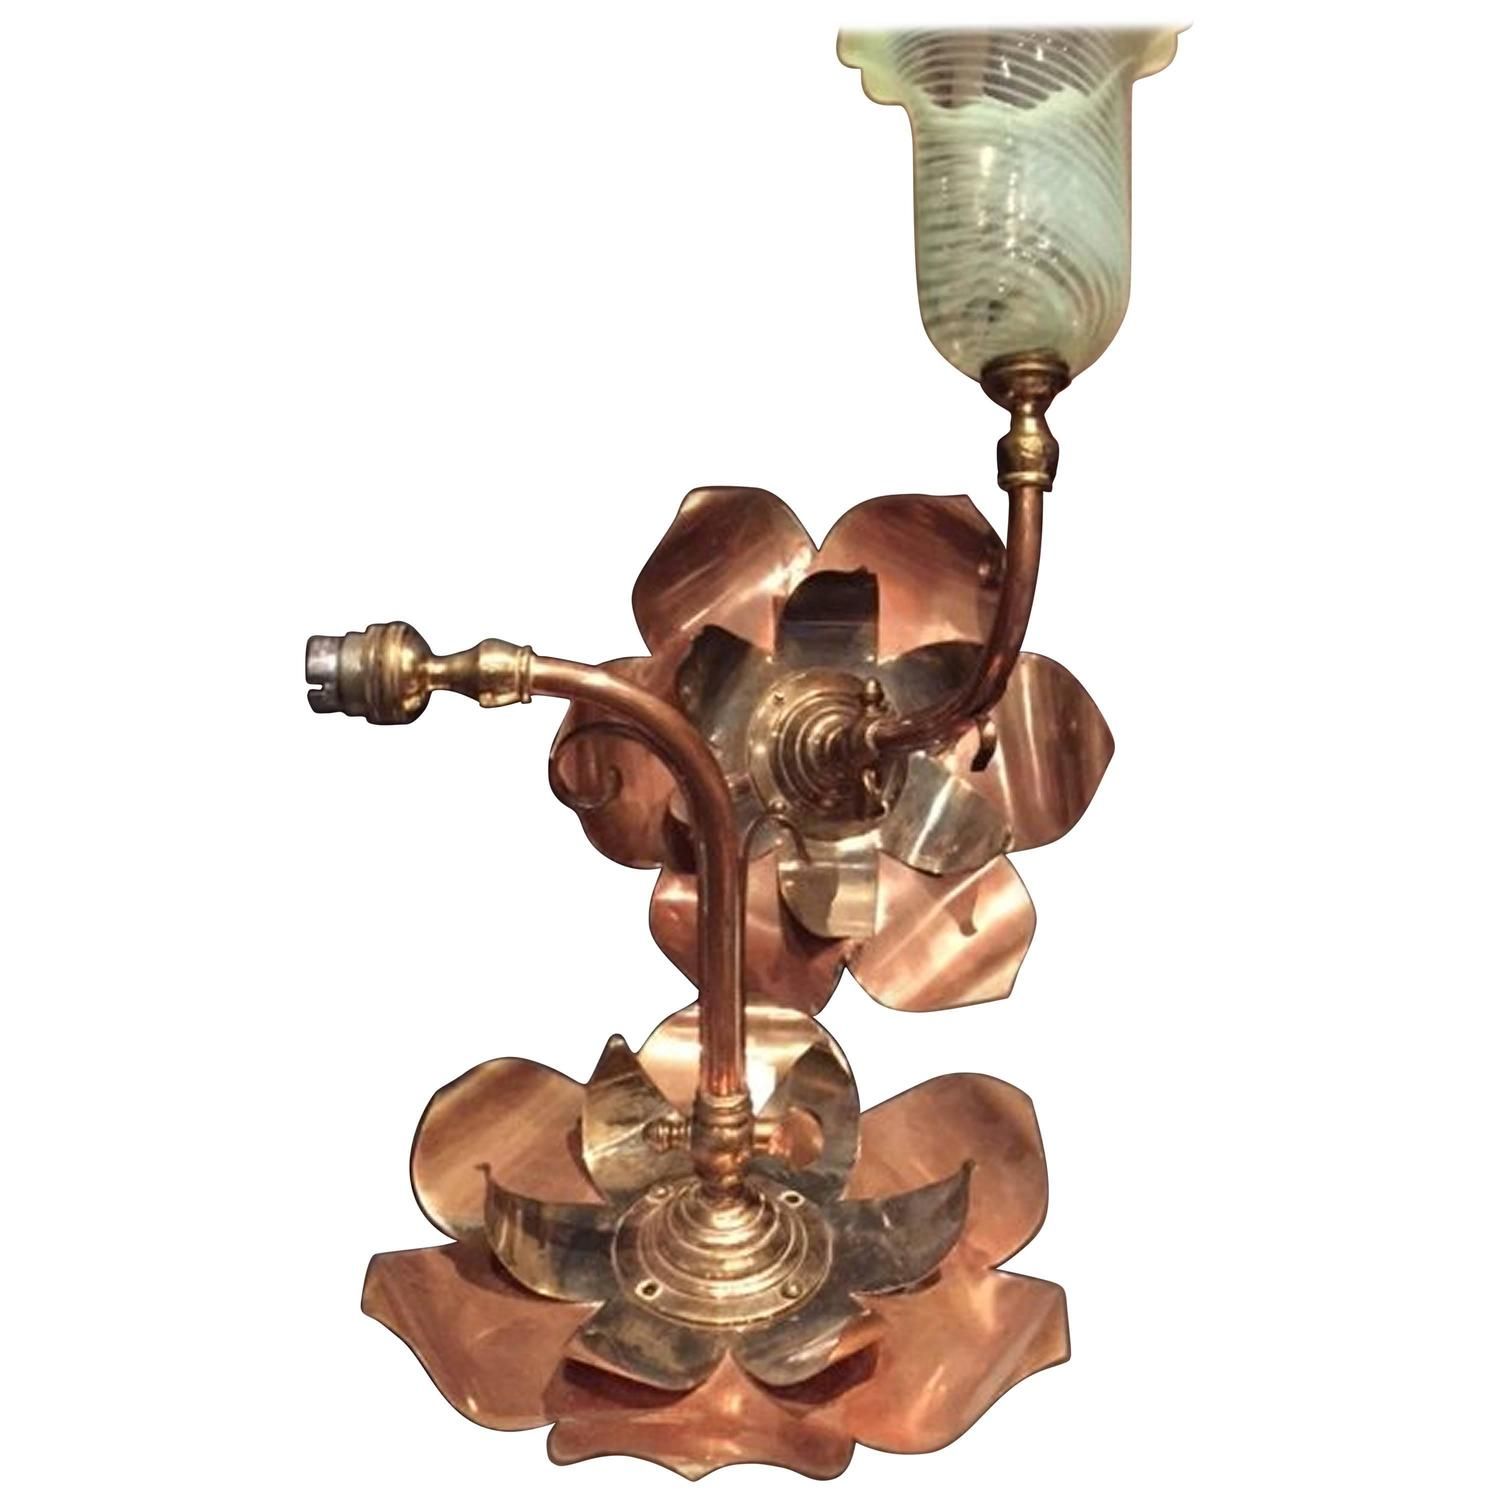 Very Rare Pair of Large Brass and Copper Lily-Pad Wall Lights by W.A.S Benson For Sale at 1stdibs